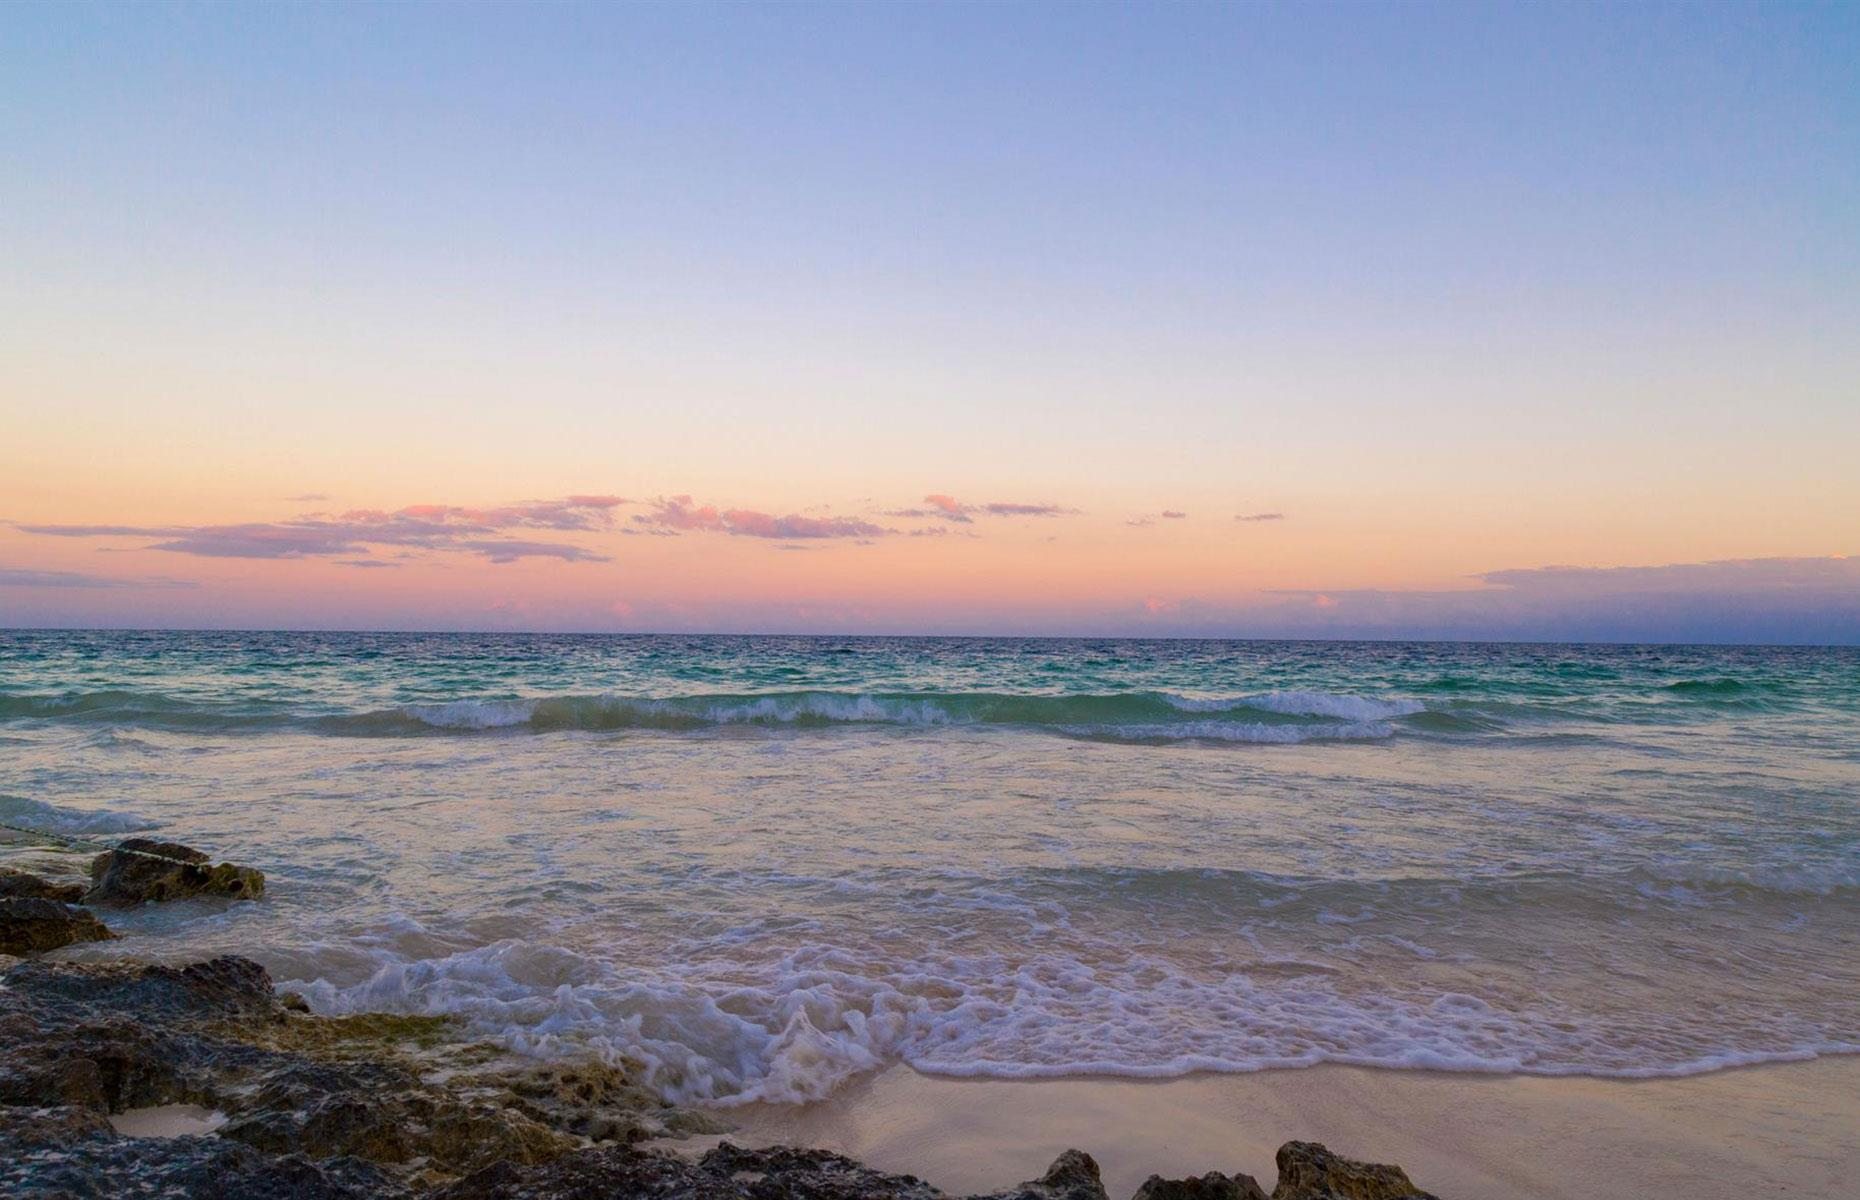 Slide 23 of 29: You don't always have to get on the same level as the clouds when looking for a magnificent sunrise. Tulum's 'paradise beach' in Mexico welcomes visitors with a spectacular coastal vista. The sun comes up at around 6am at mid-summer here.